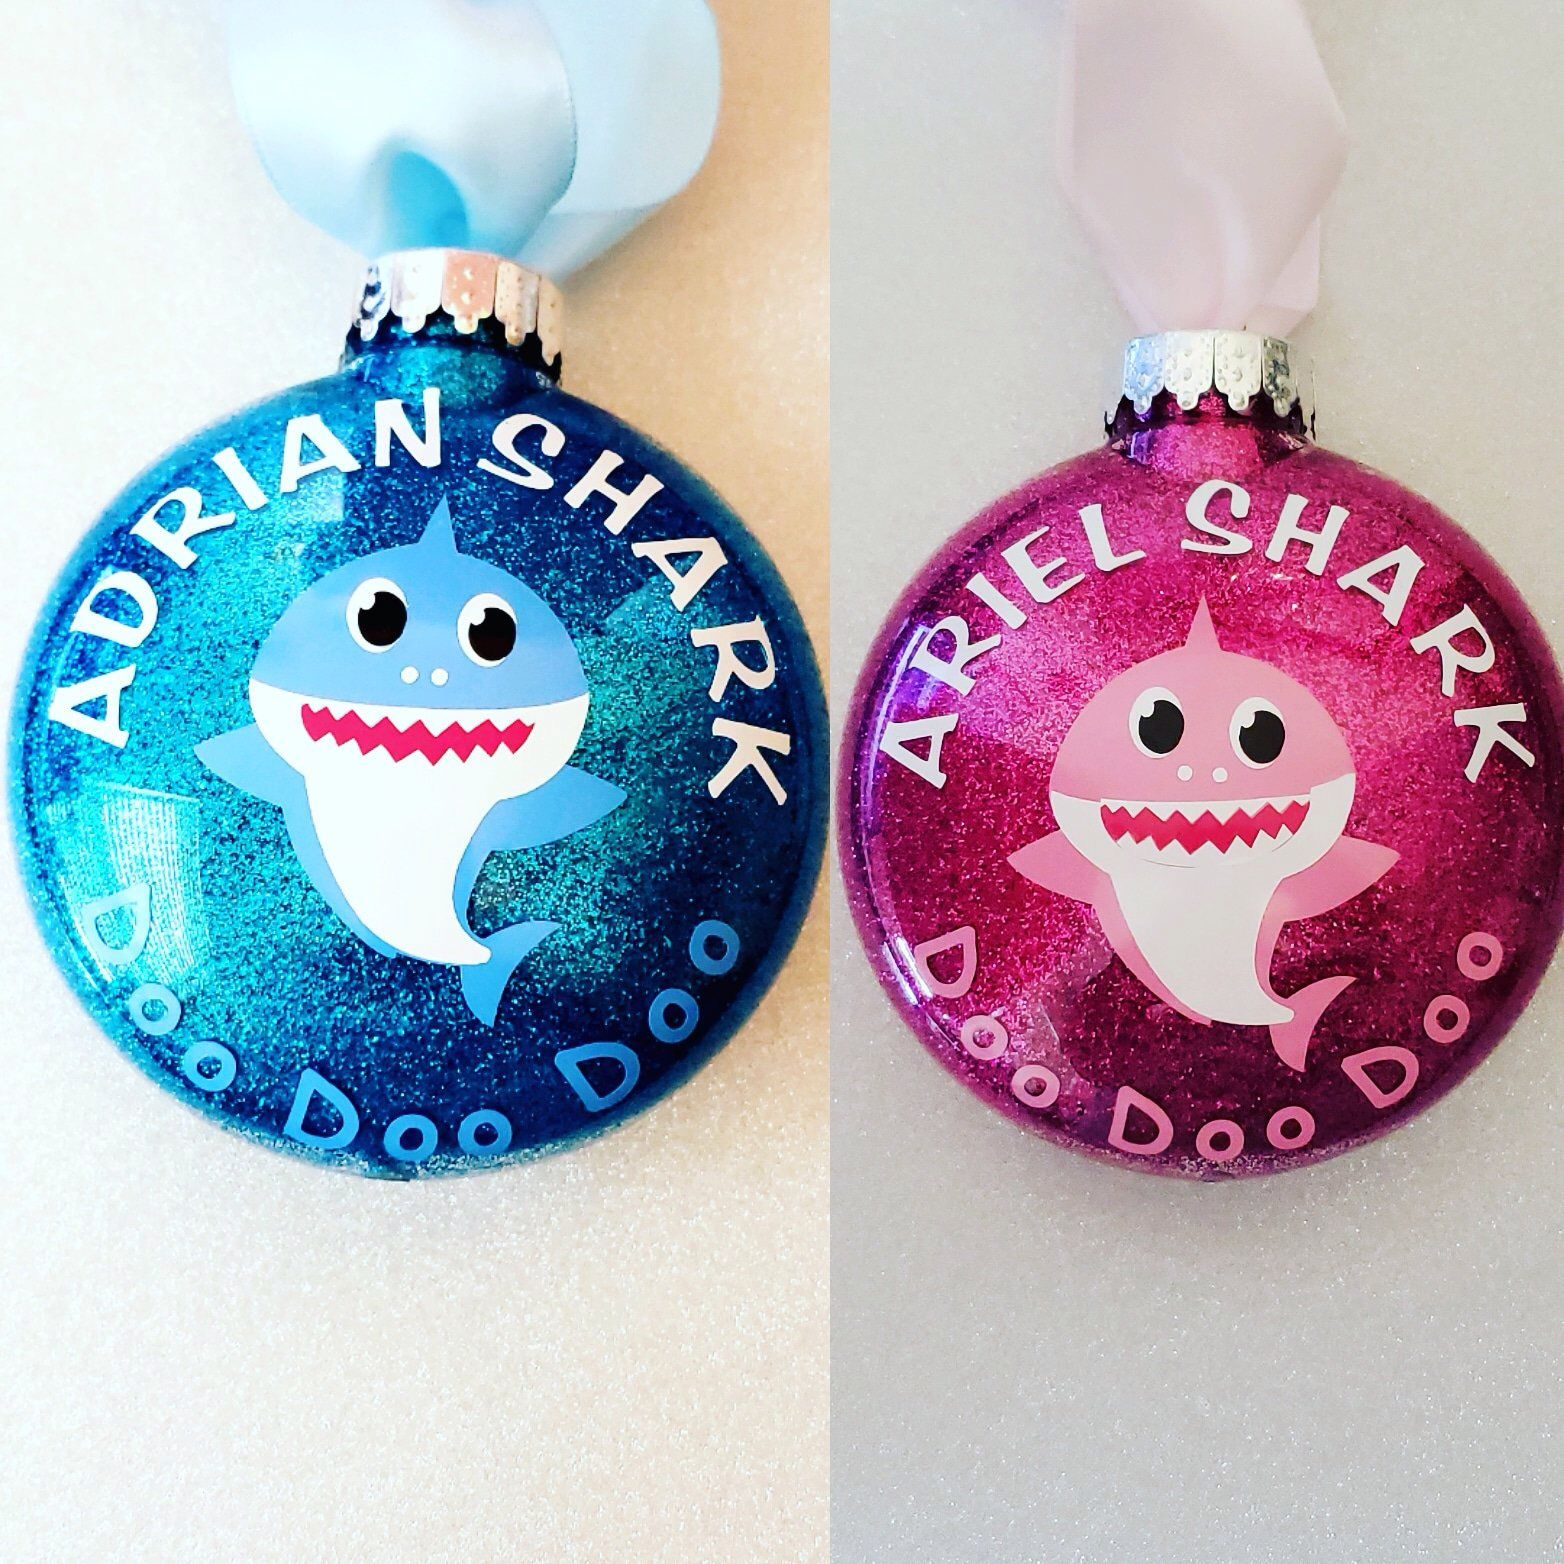 Personalized Baby Shark Ornaments By Iagdesigns On Etsy Https Www Etsy Homemade Christmas Ornaments Diy Gold Christmas Ornaments Christmas Ornaments Homemade